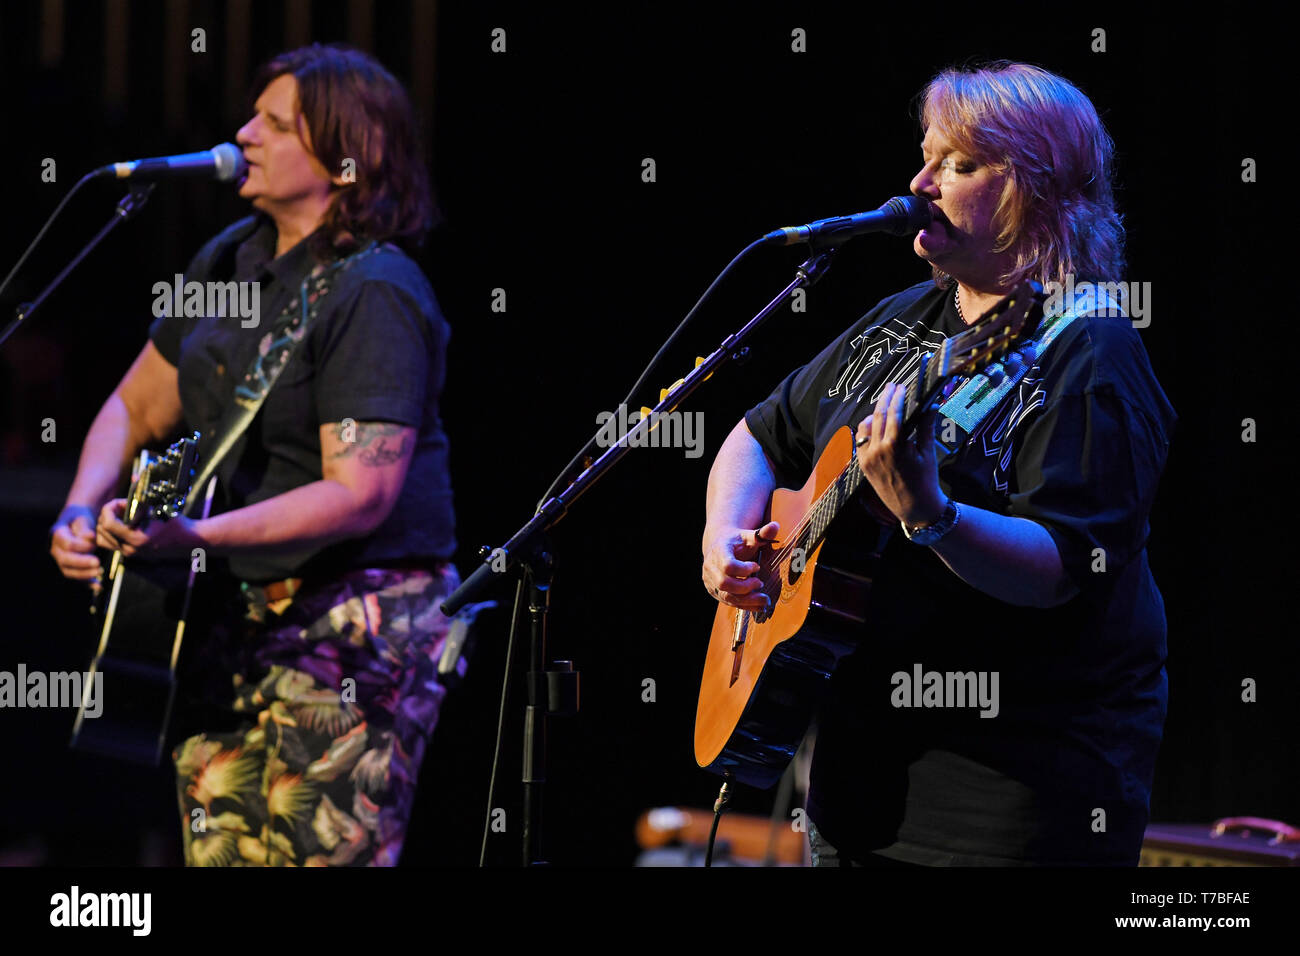 Fort Lauderdale, FL, USA. 04th May, 2019. Indigo Girls perform at The Parker Playhouse on May4, 2019 in Fort Lauderdale Florida. Credit: Mpi04/Media Punch/Alamy Live News Stock Photo